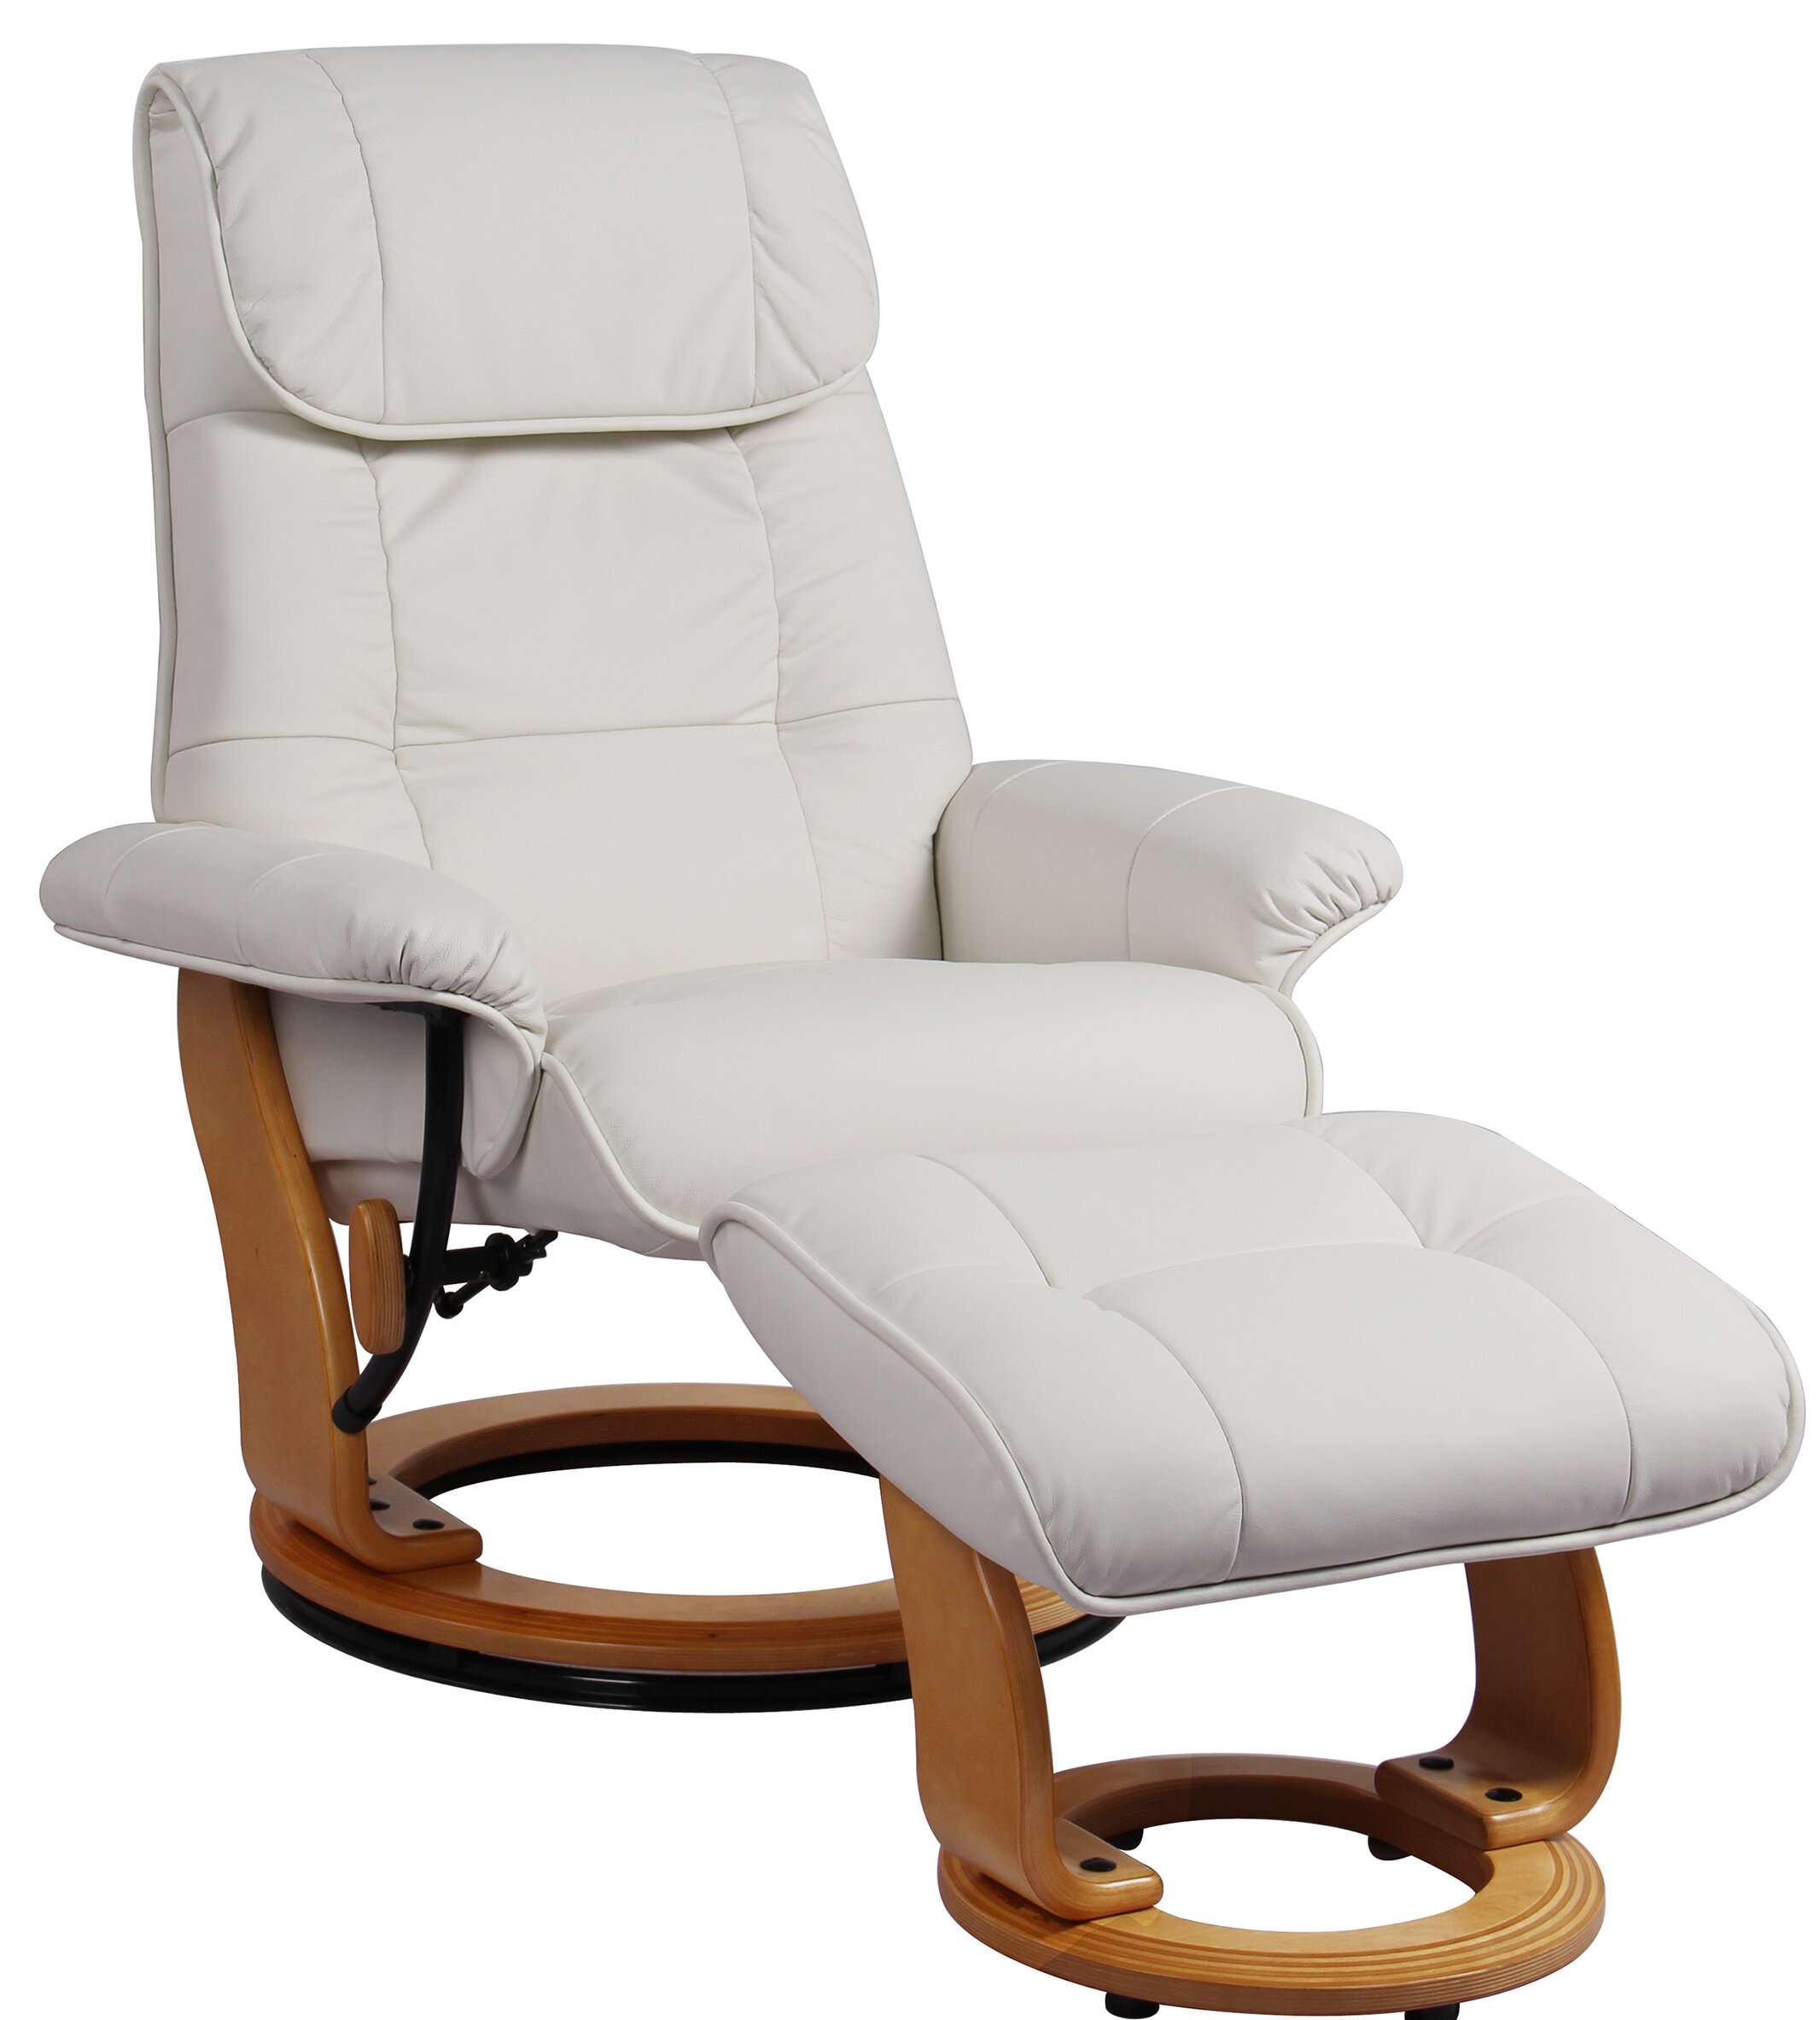 Remarkable Latitude Run Beaucet Leather Manual Swivel Recliner With Ibusinesslaw Wood Chair Design Ideas Ibusinesslaworg